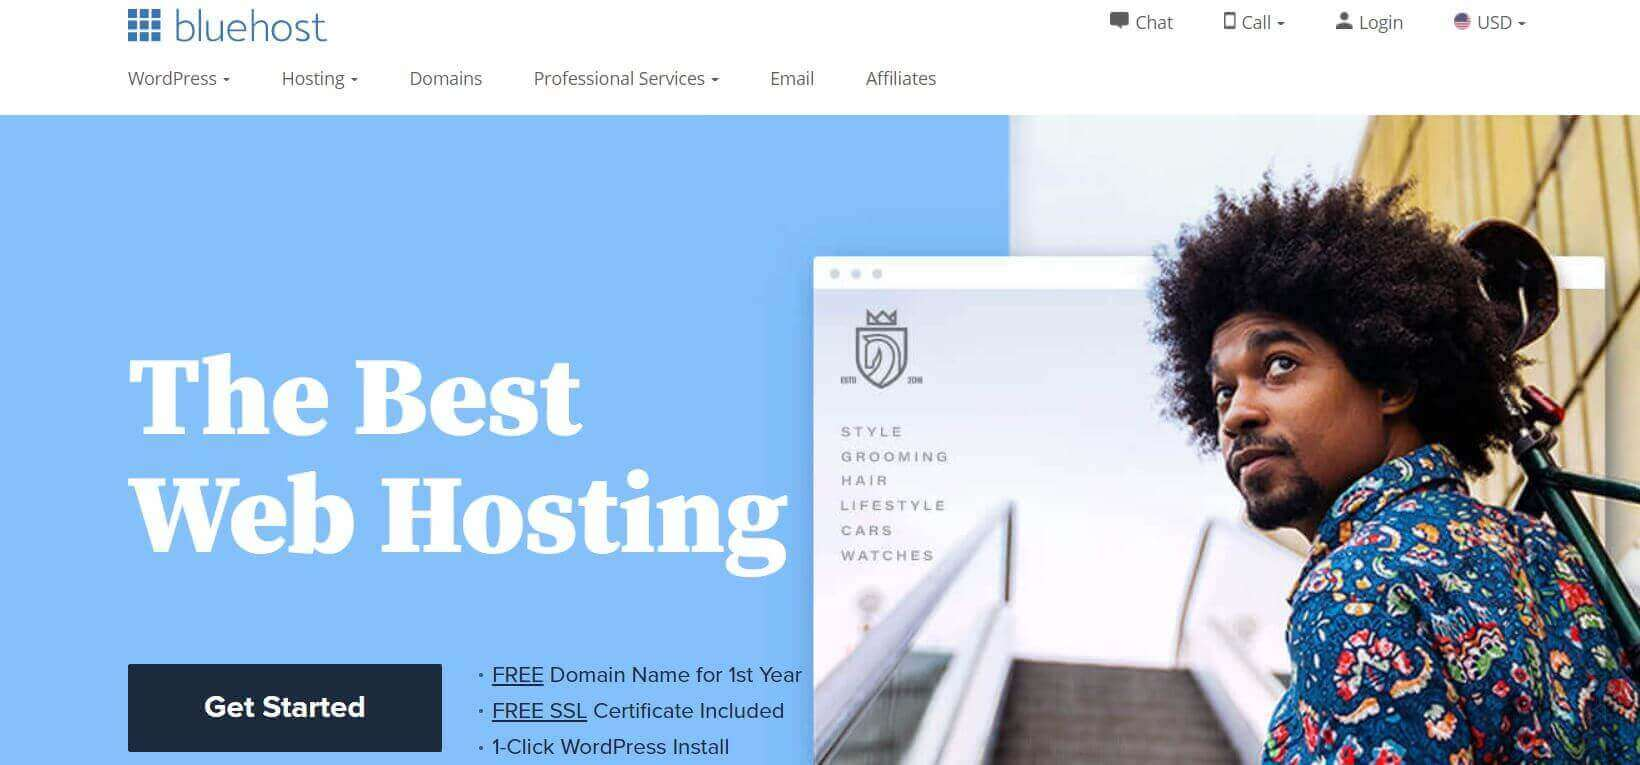 Bluehost Cover